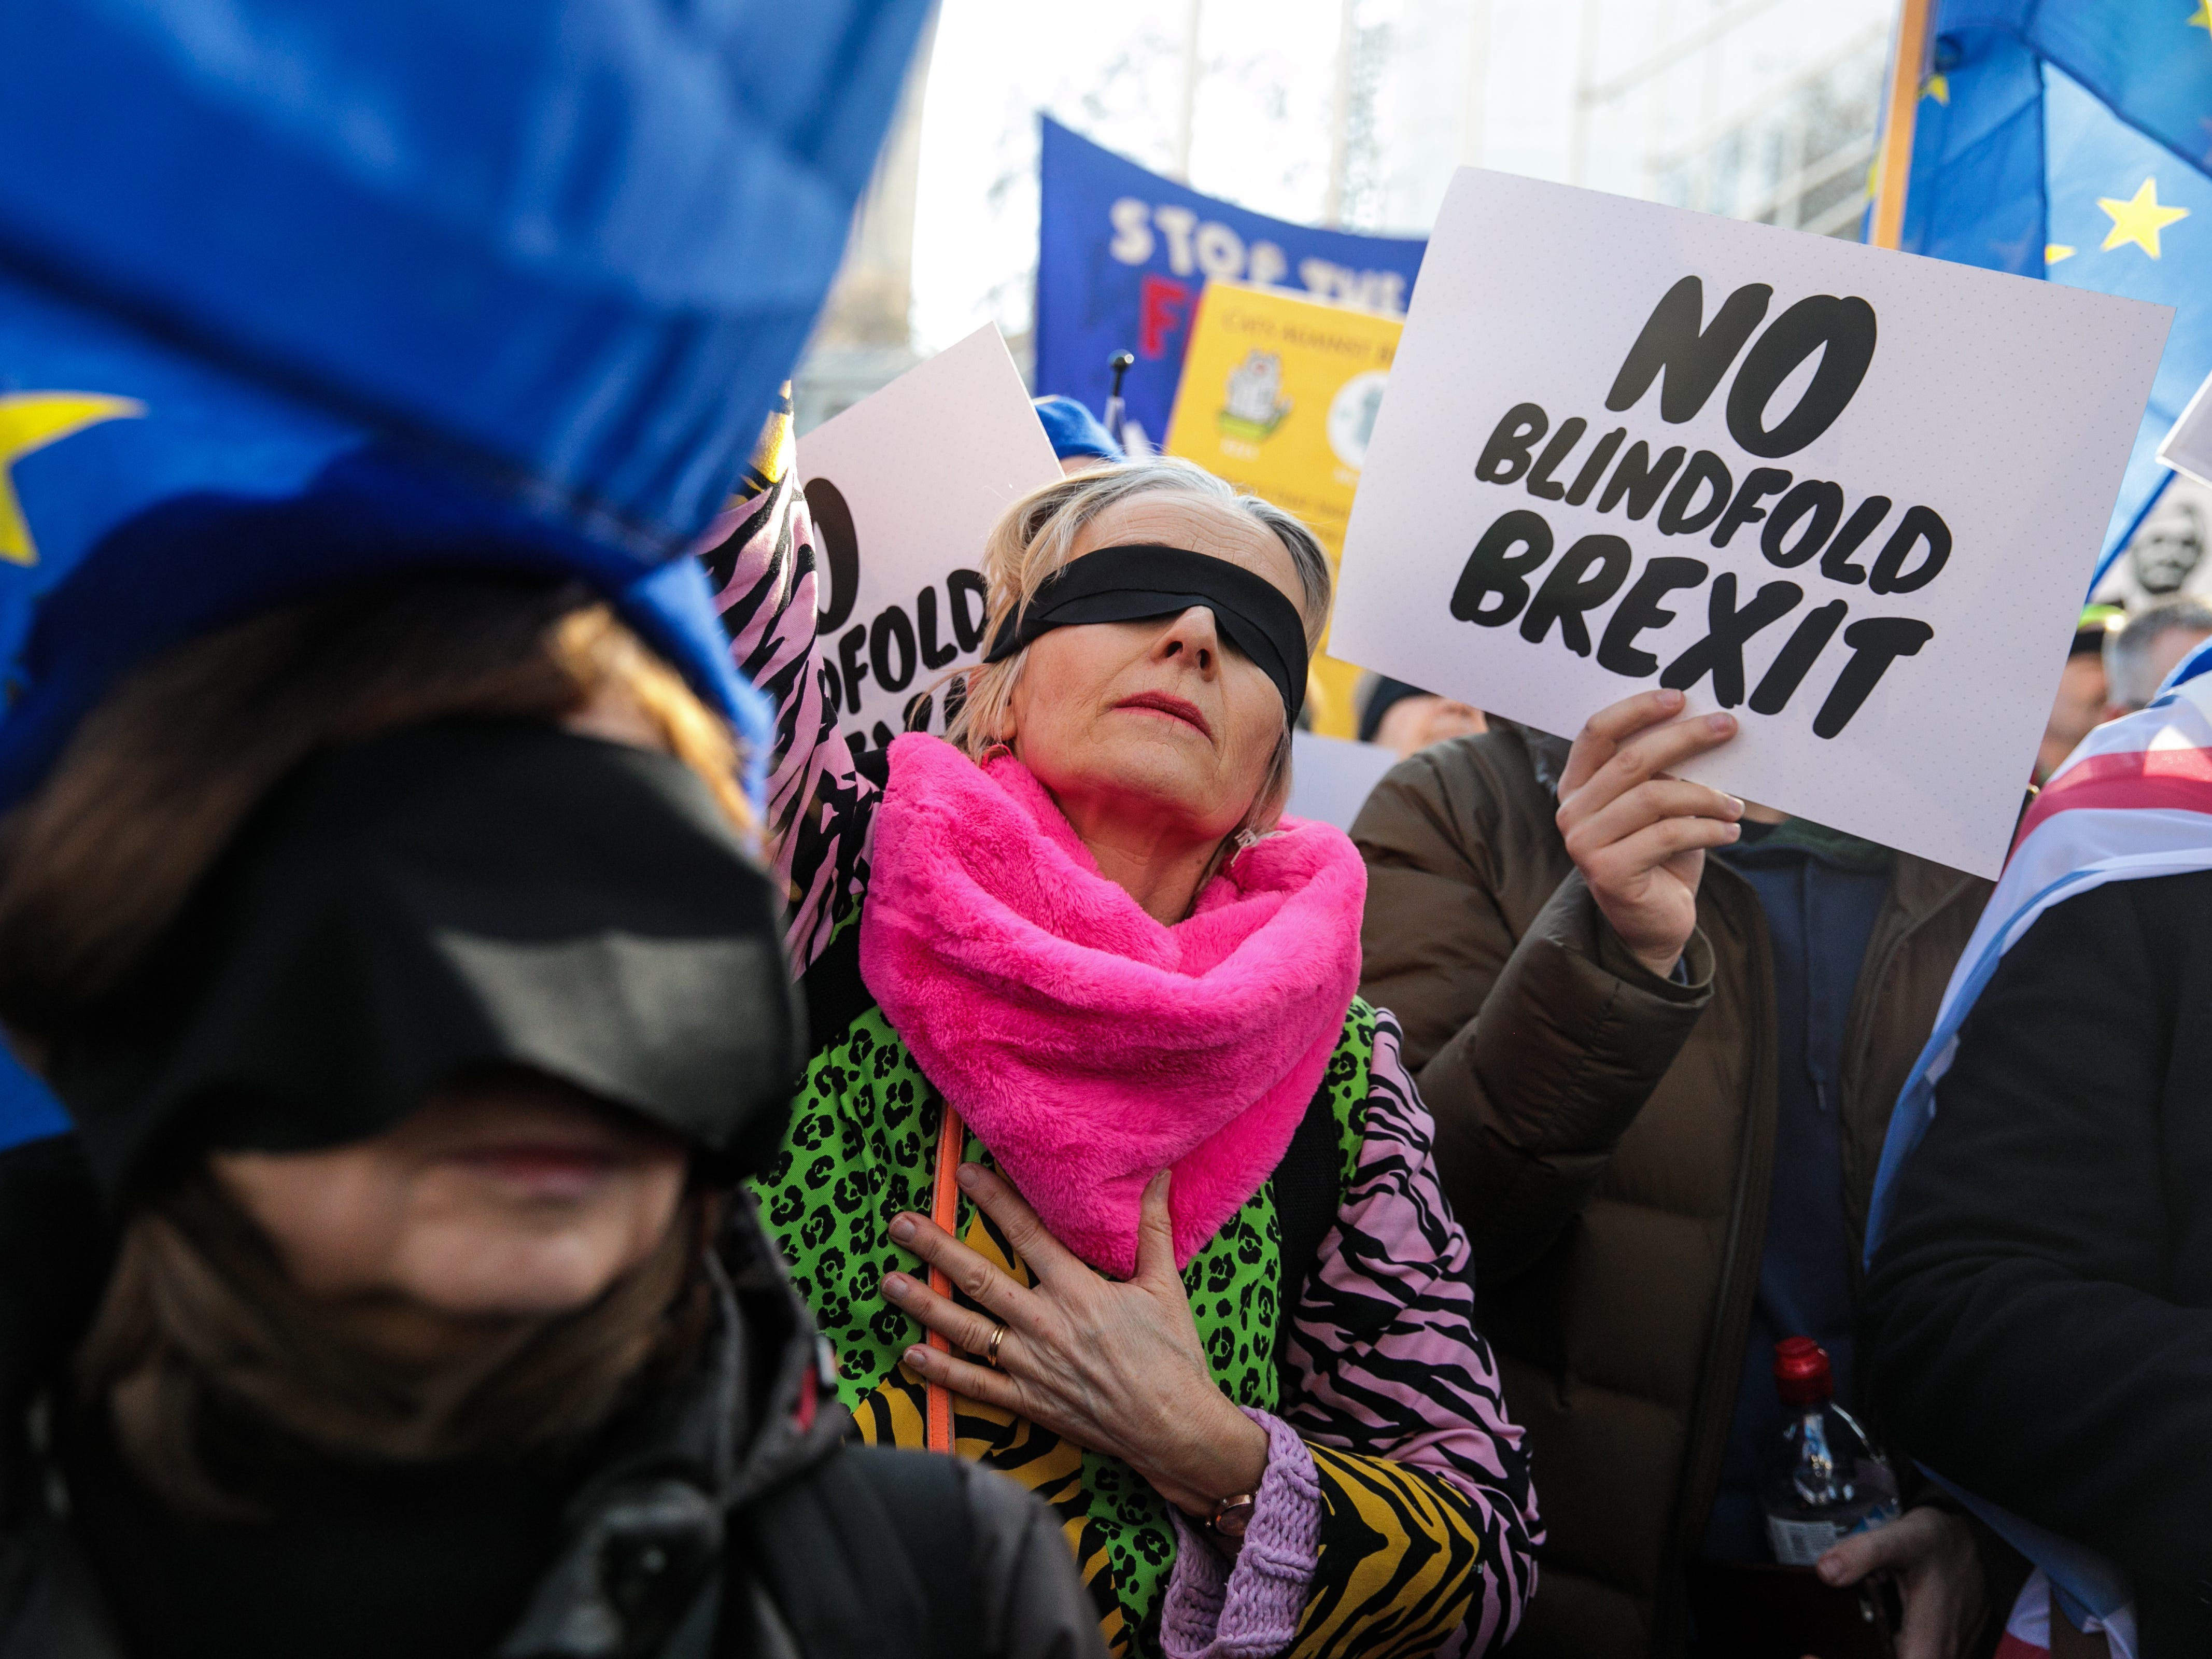 Anti-Brexit protesters demonstrate outside the Houses of Parliament on Feb. 14, 2019 in London, England. MPs are set to debate and vote on the next steps in the Brexit process later today as Prime Minister Theresa May continues to try to get her deal through Parliament.